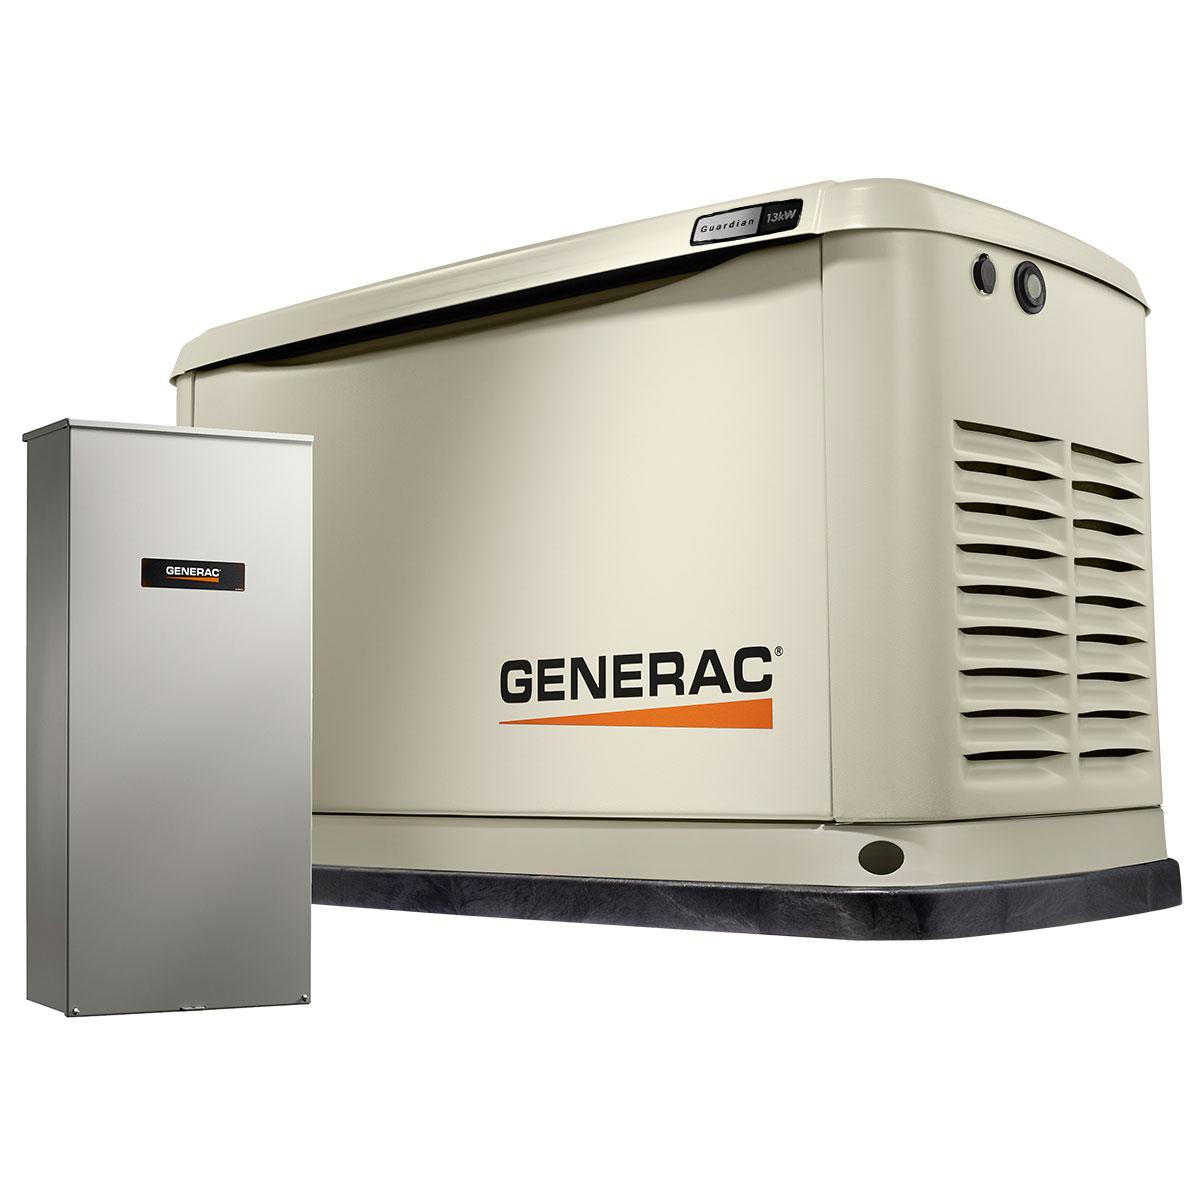 Generac Guardian 13,000 Watt Standby Generator with 200-Amp Transfer Switch ('Multiple' Murder Victims Found in Calif. Home / 'Multiple' Murder Victims Found in Calif. Home)